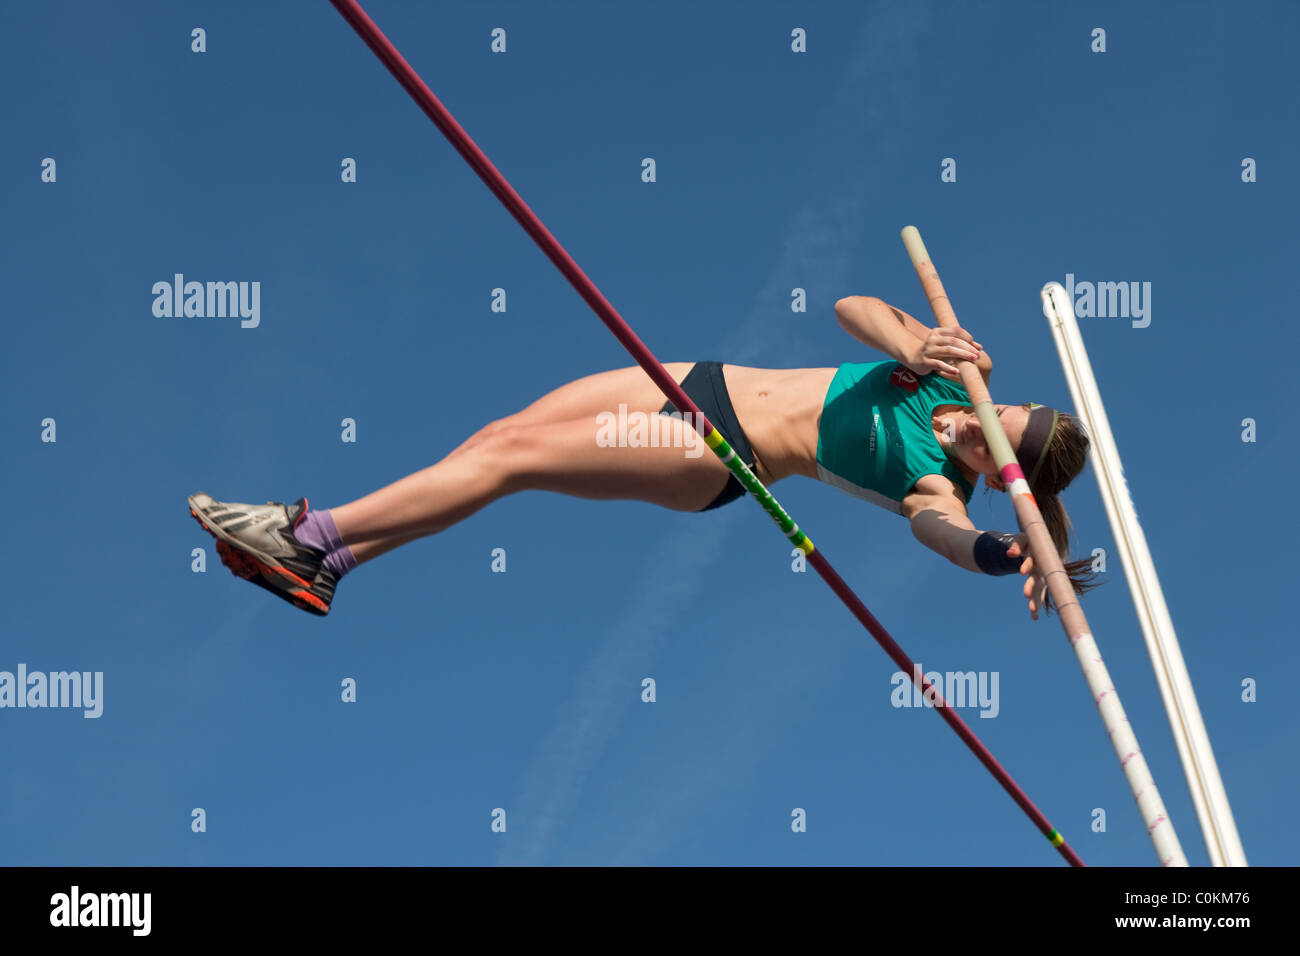 pole vaulting Sport outdoor Athletics competition race athlete. Championships of Spain, July 3rd 4th 2010 Calvià - Stock Image